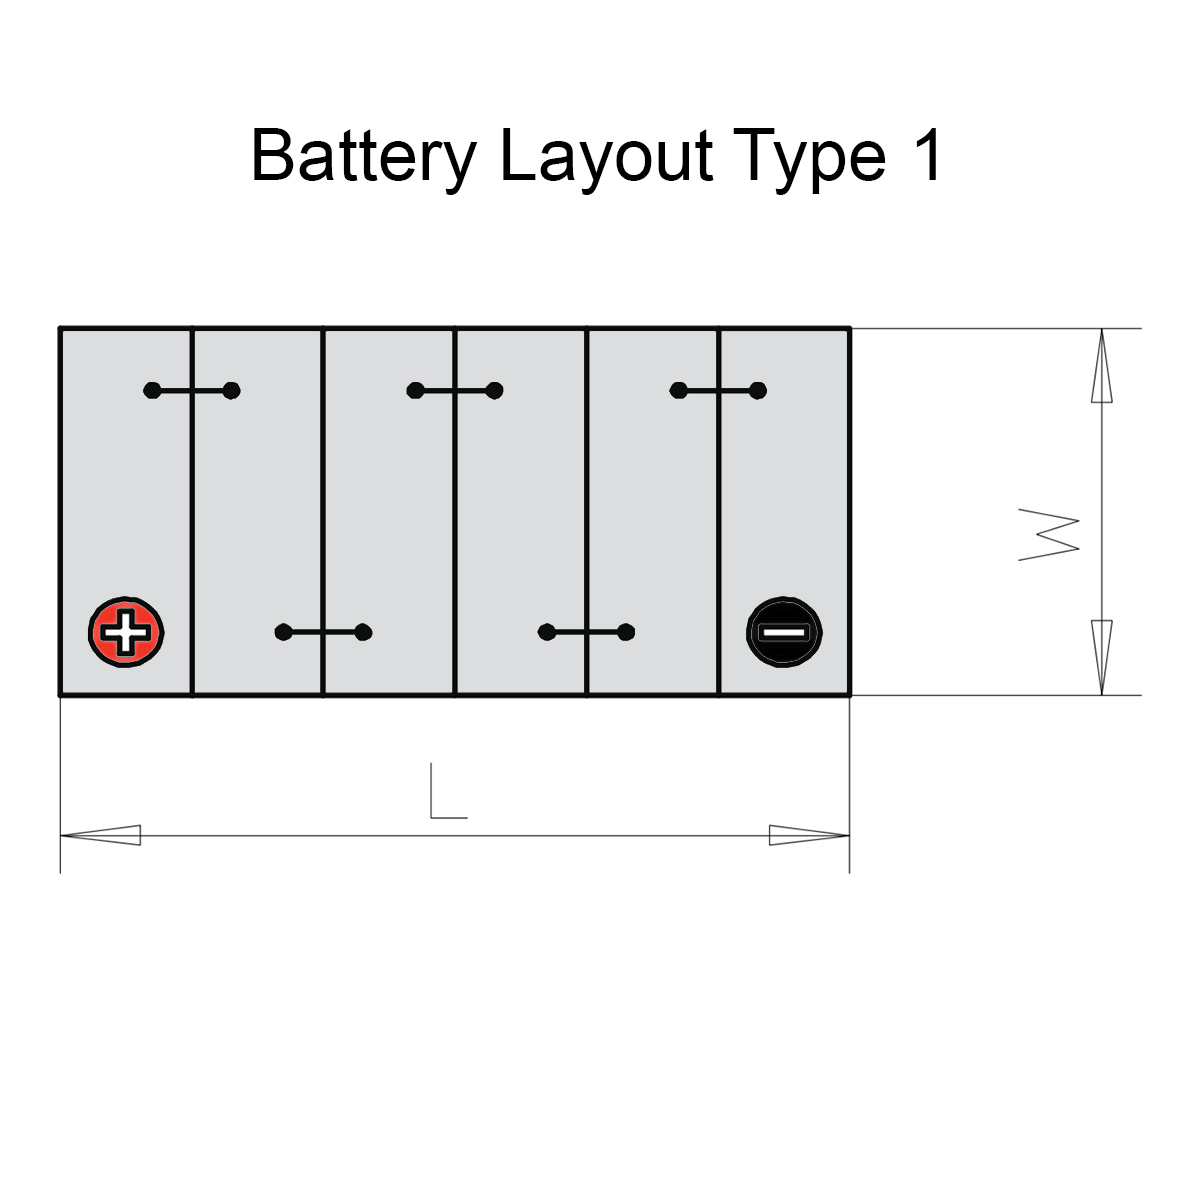 Duracell 043 / DA45L Advanced Car Battery Battery Layout